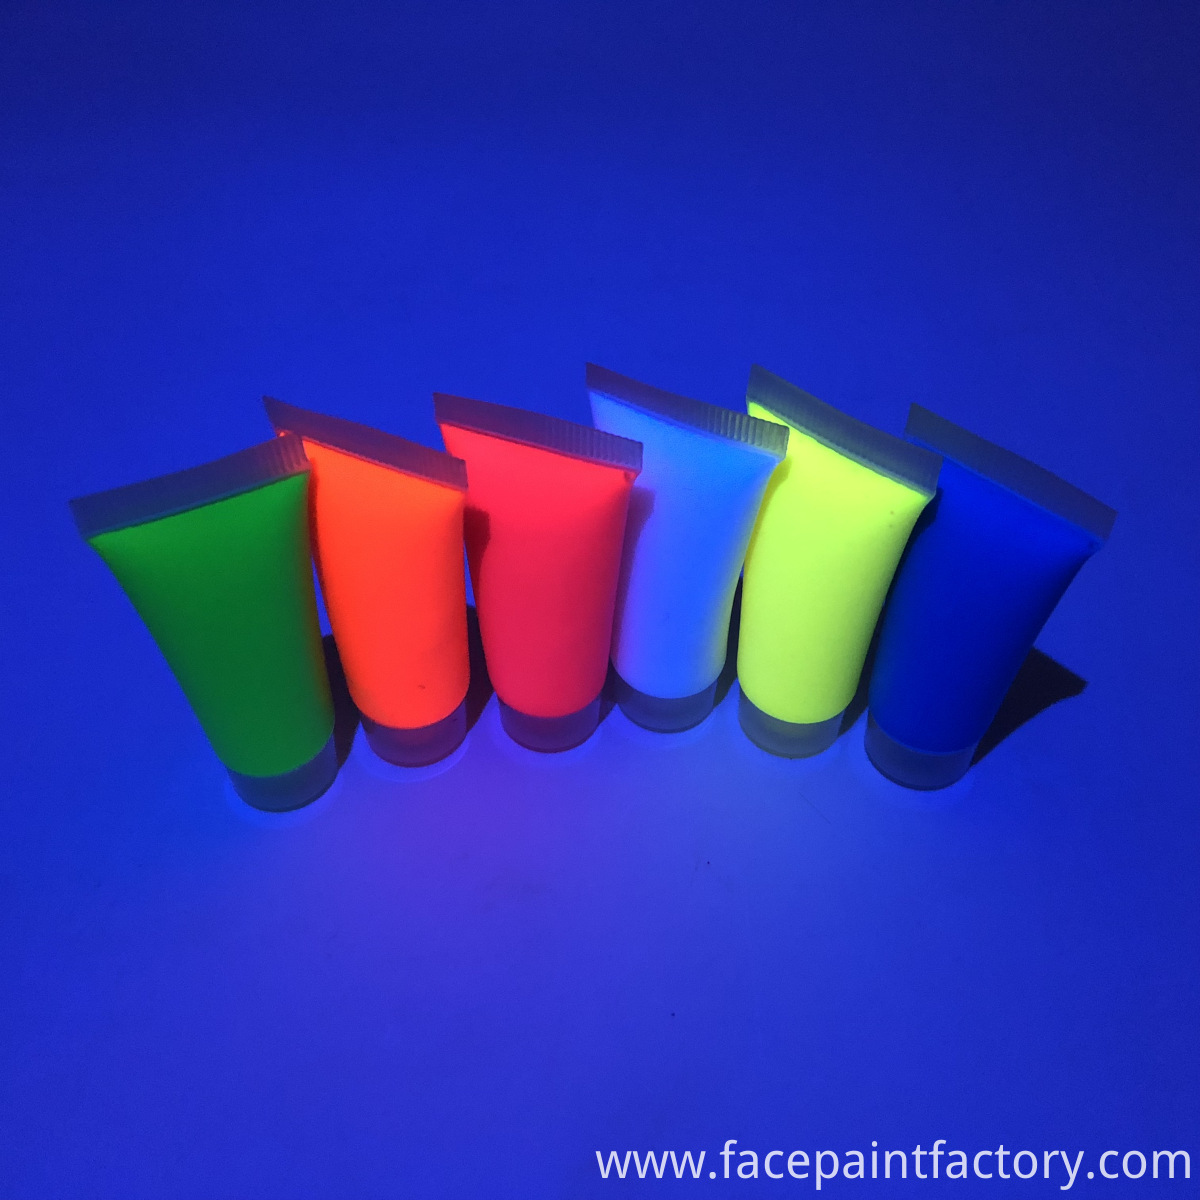 black light reactive face paint